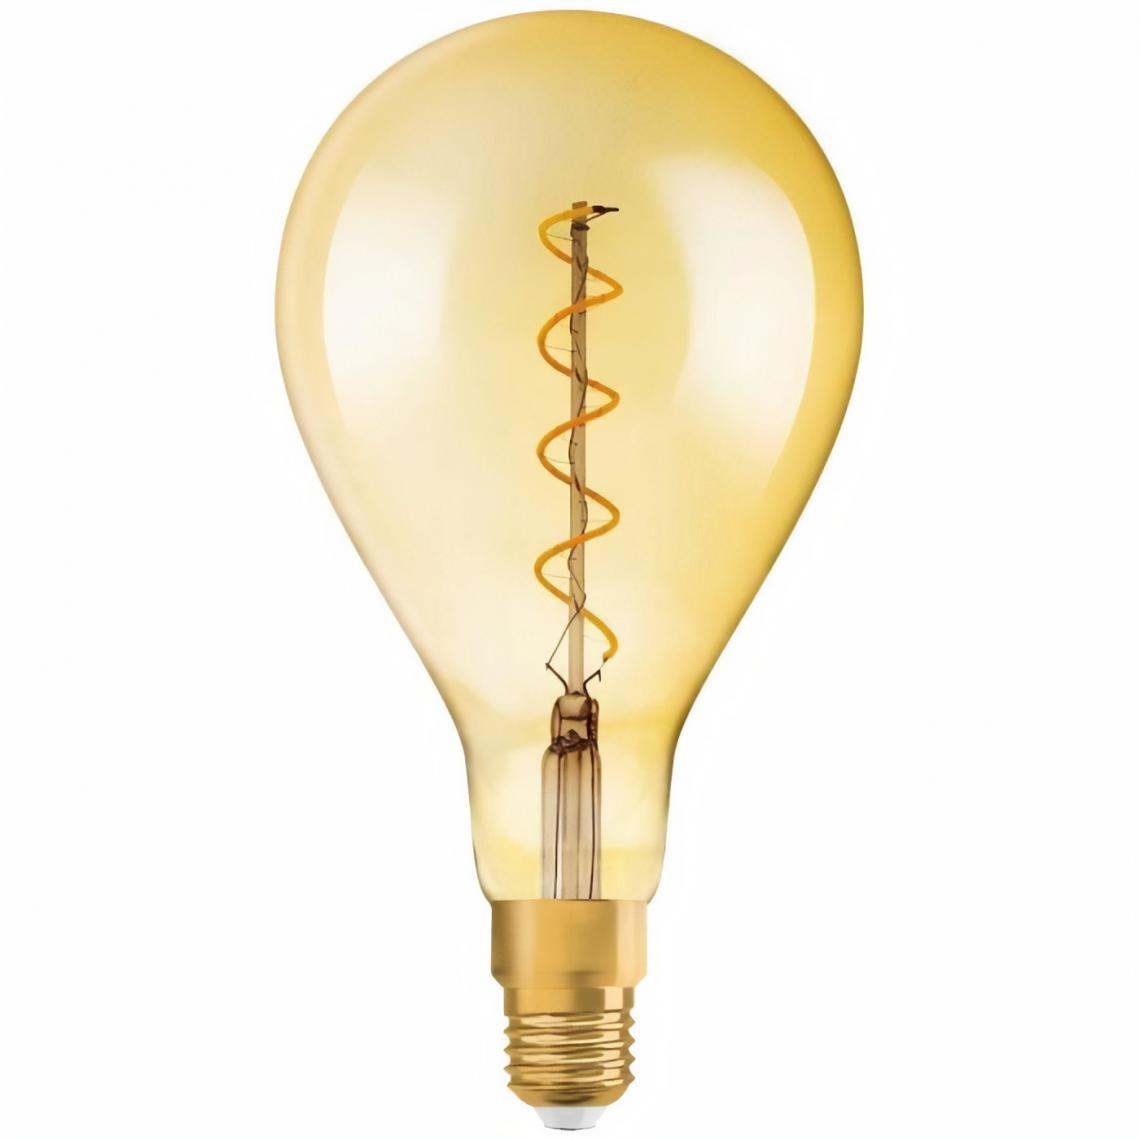 Osram OSRAM Edition 1906 Ampoule LED Standard 160mm clair fil variable Or - 5 W 28 W - E27 - Blanc chaud